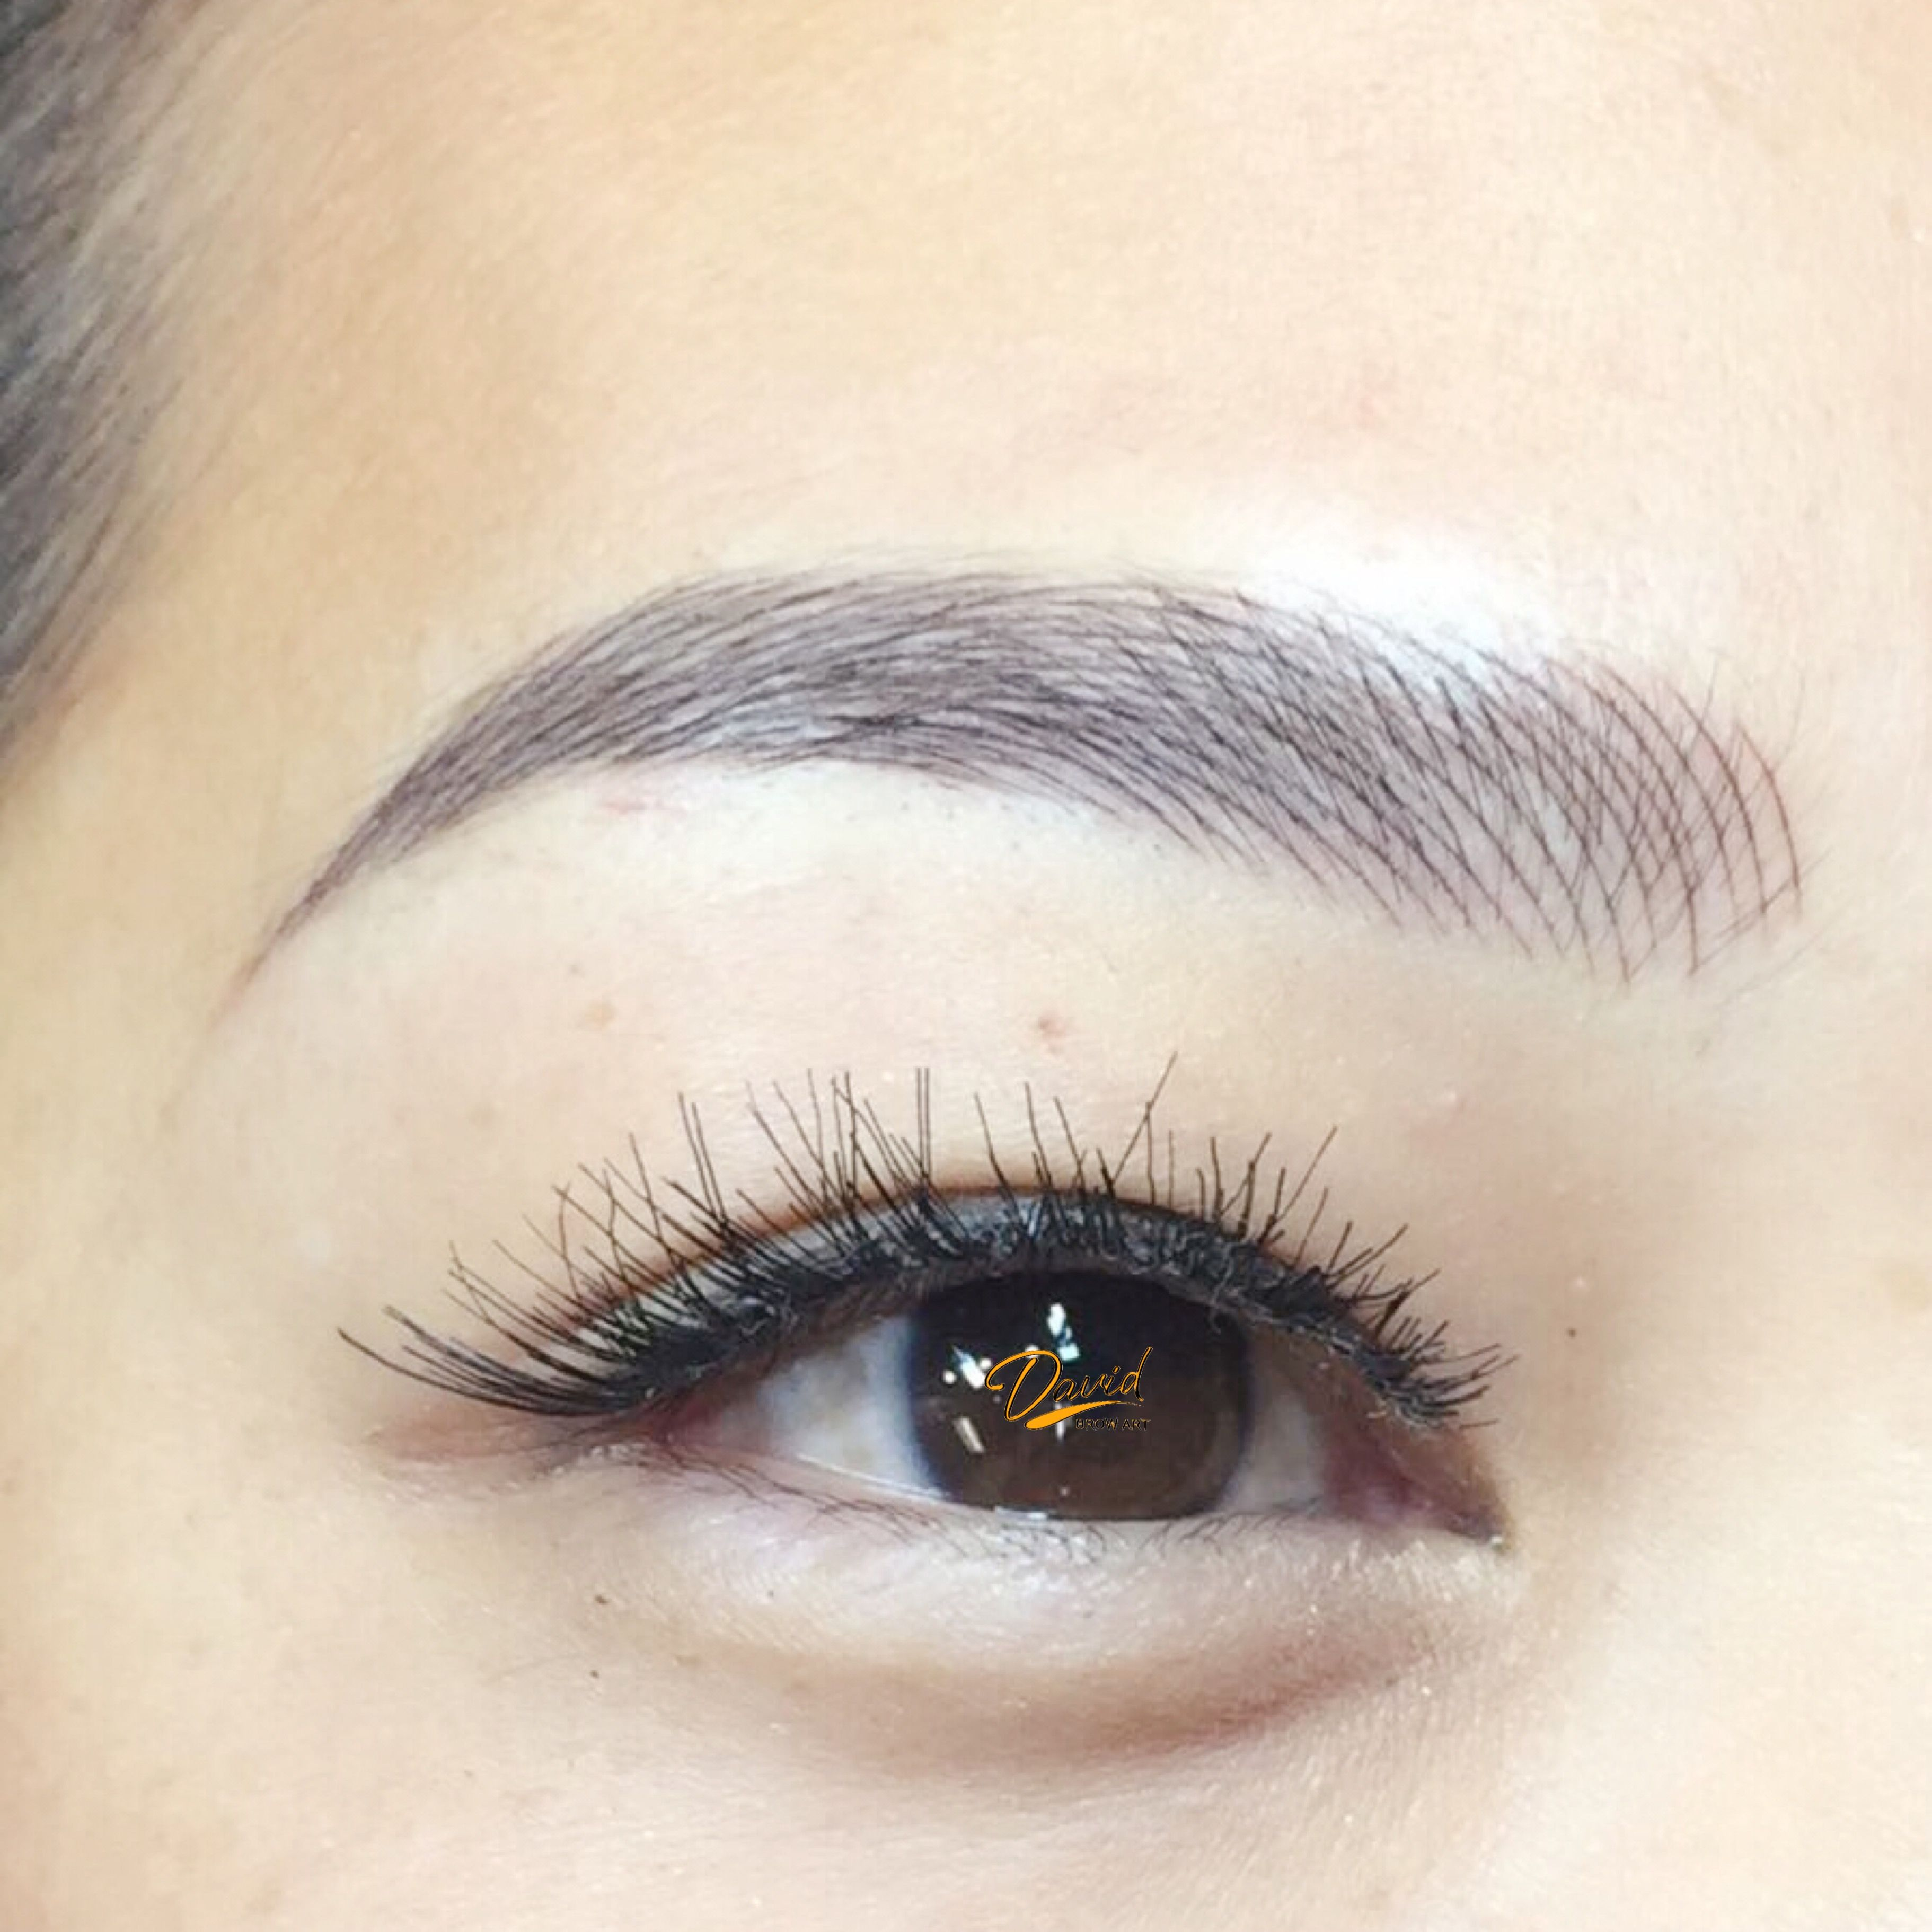 Image Taken Right After Microblading Eyebrow Class Live Model No